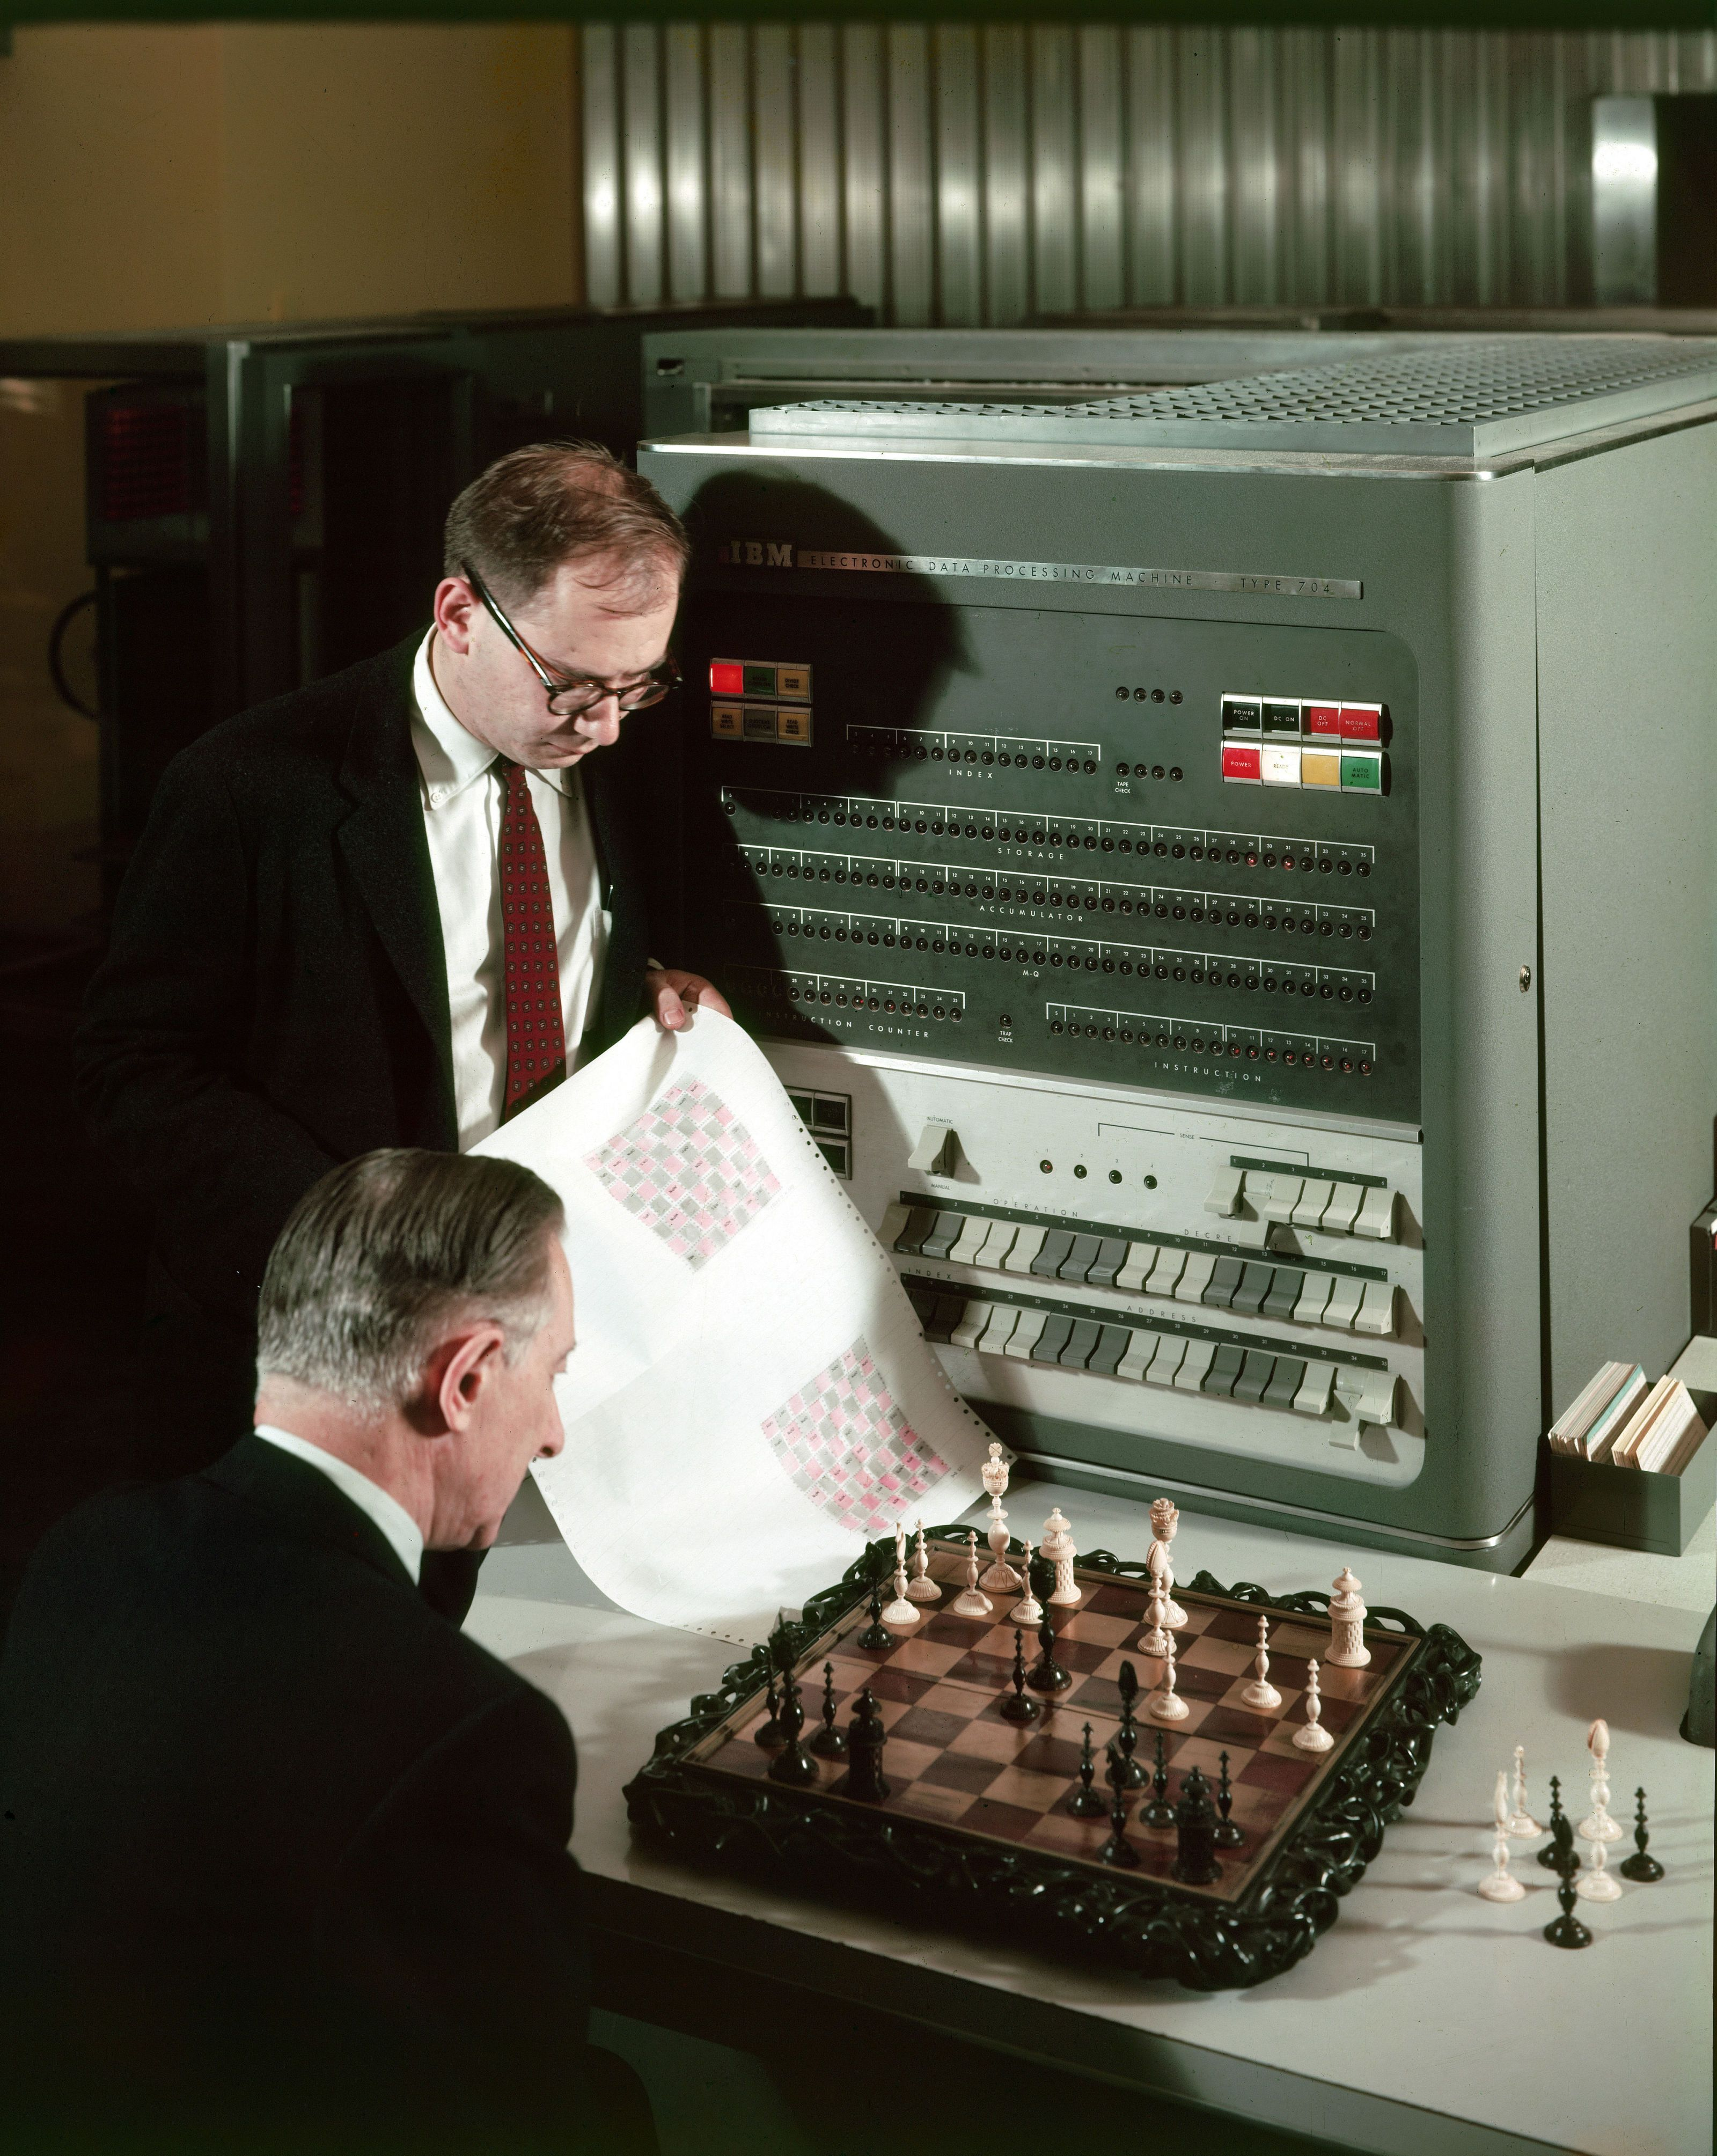 Checkmate, Human: How Computers Got So Good at Chess